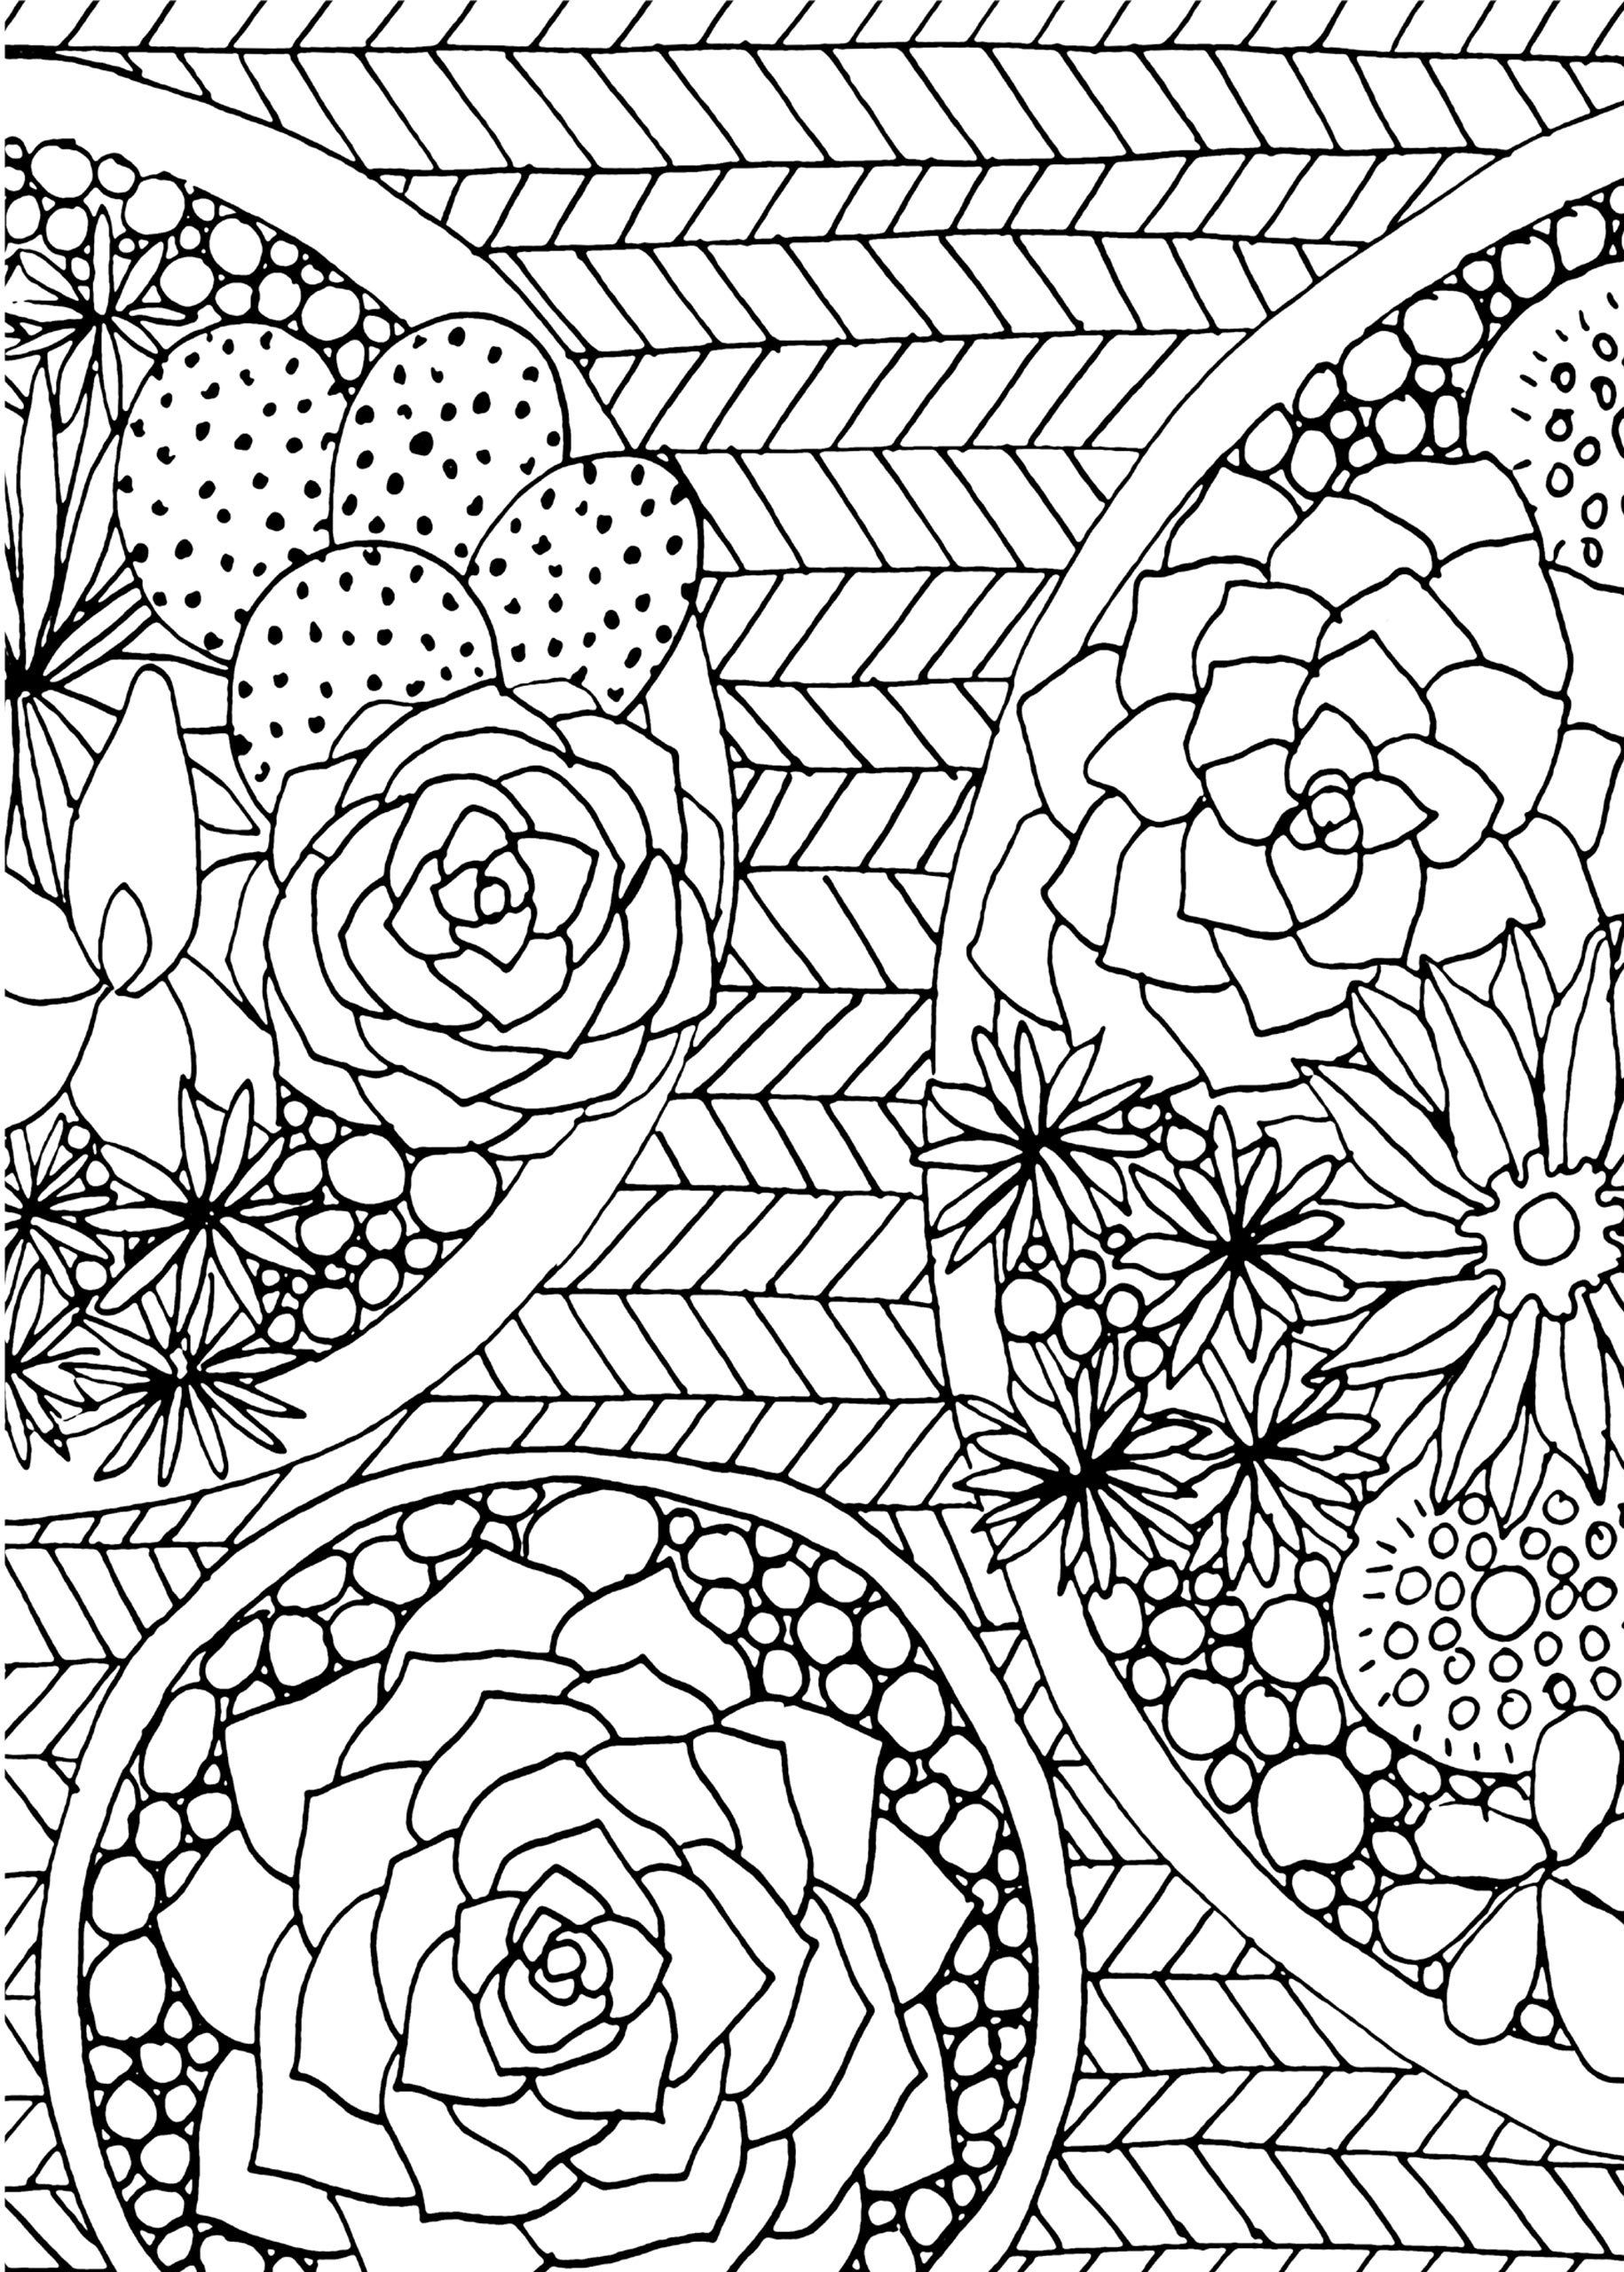 Stress Relieving Coloring Pages For Adults